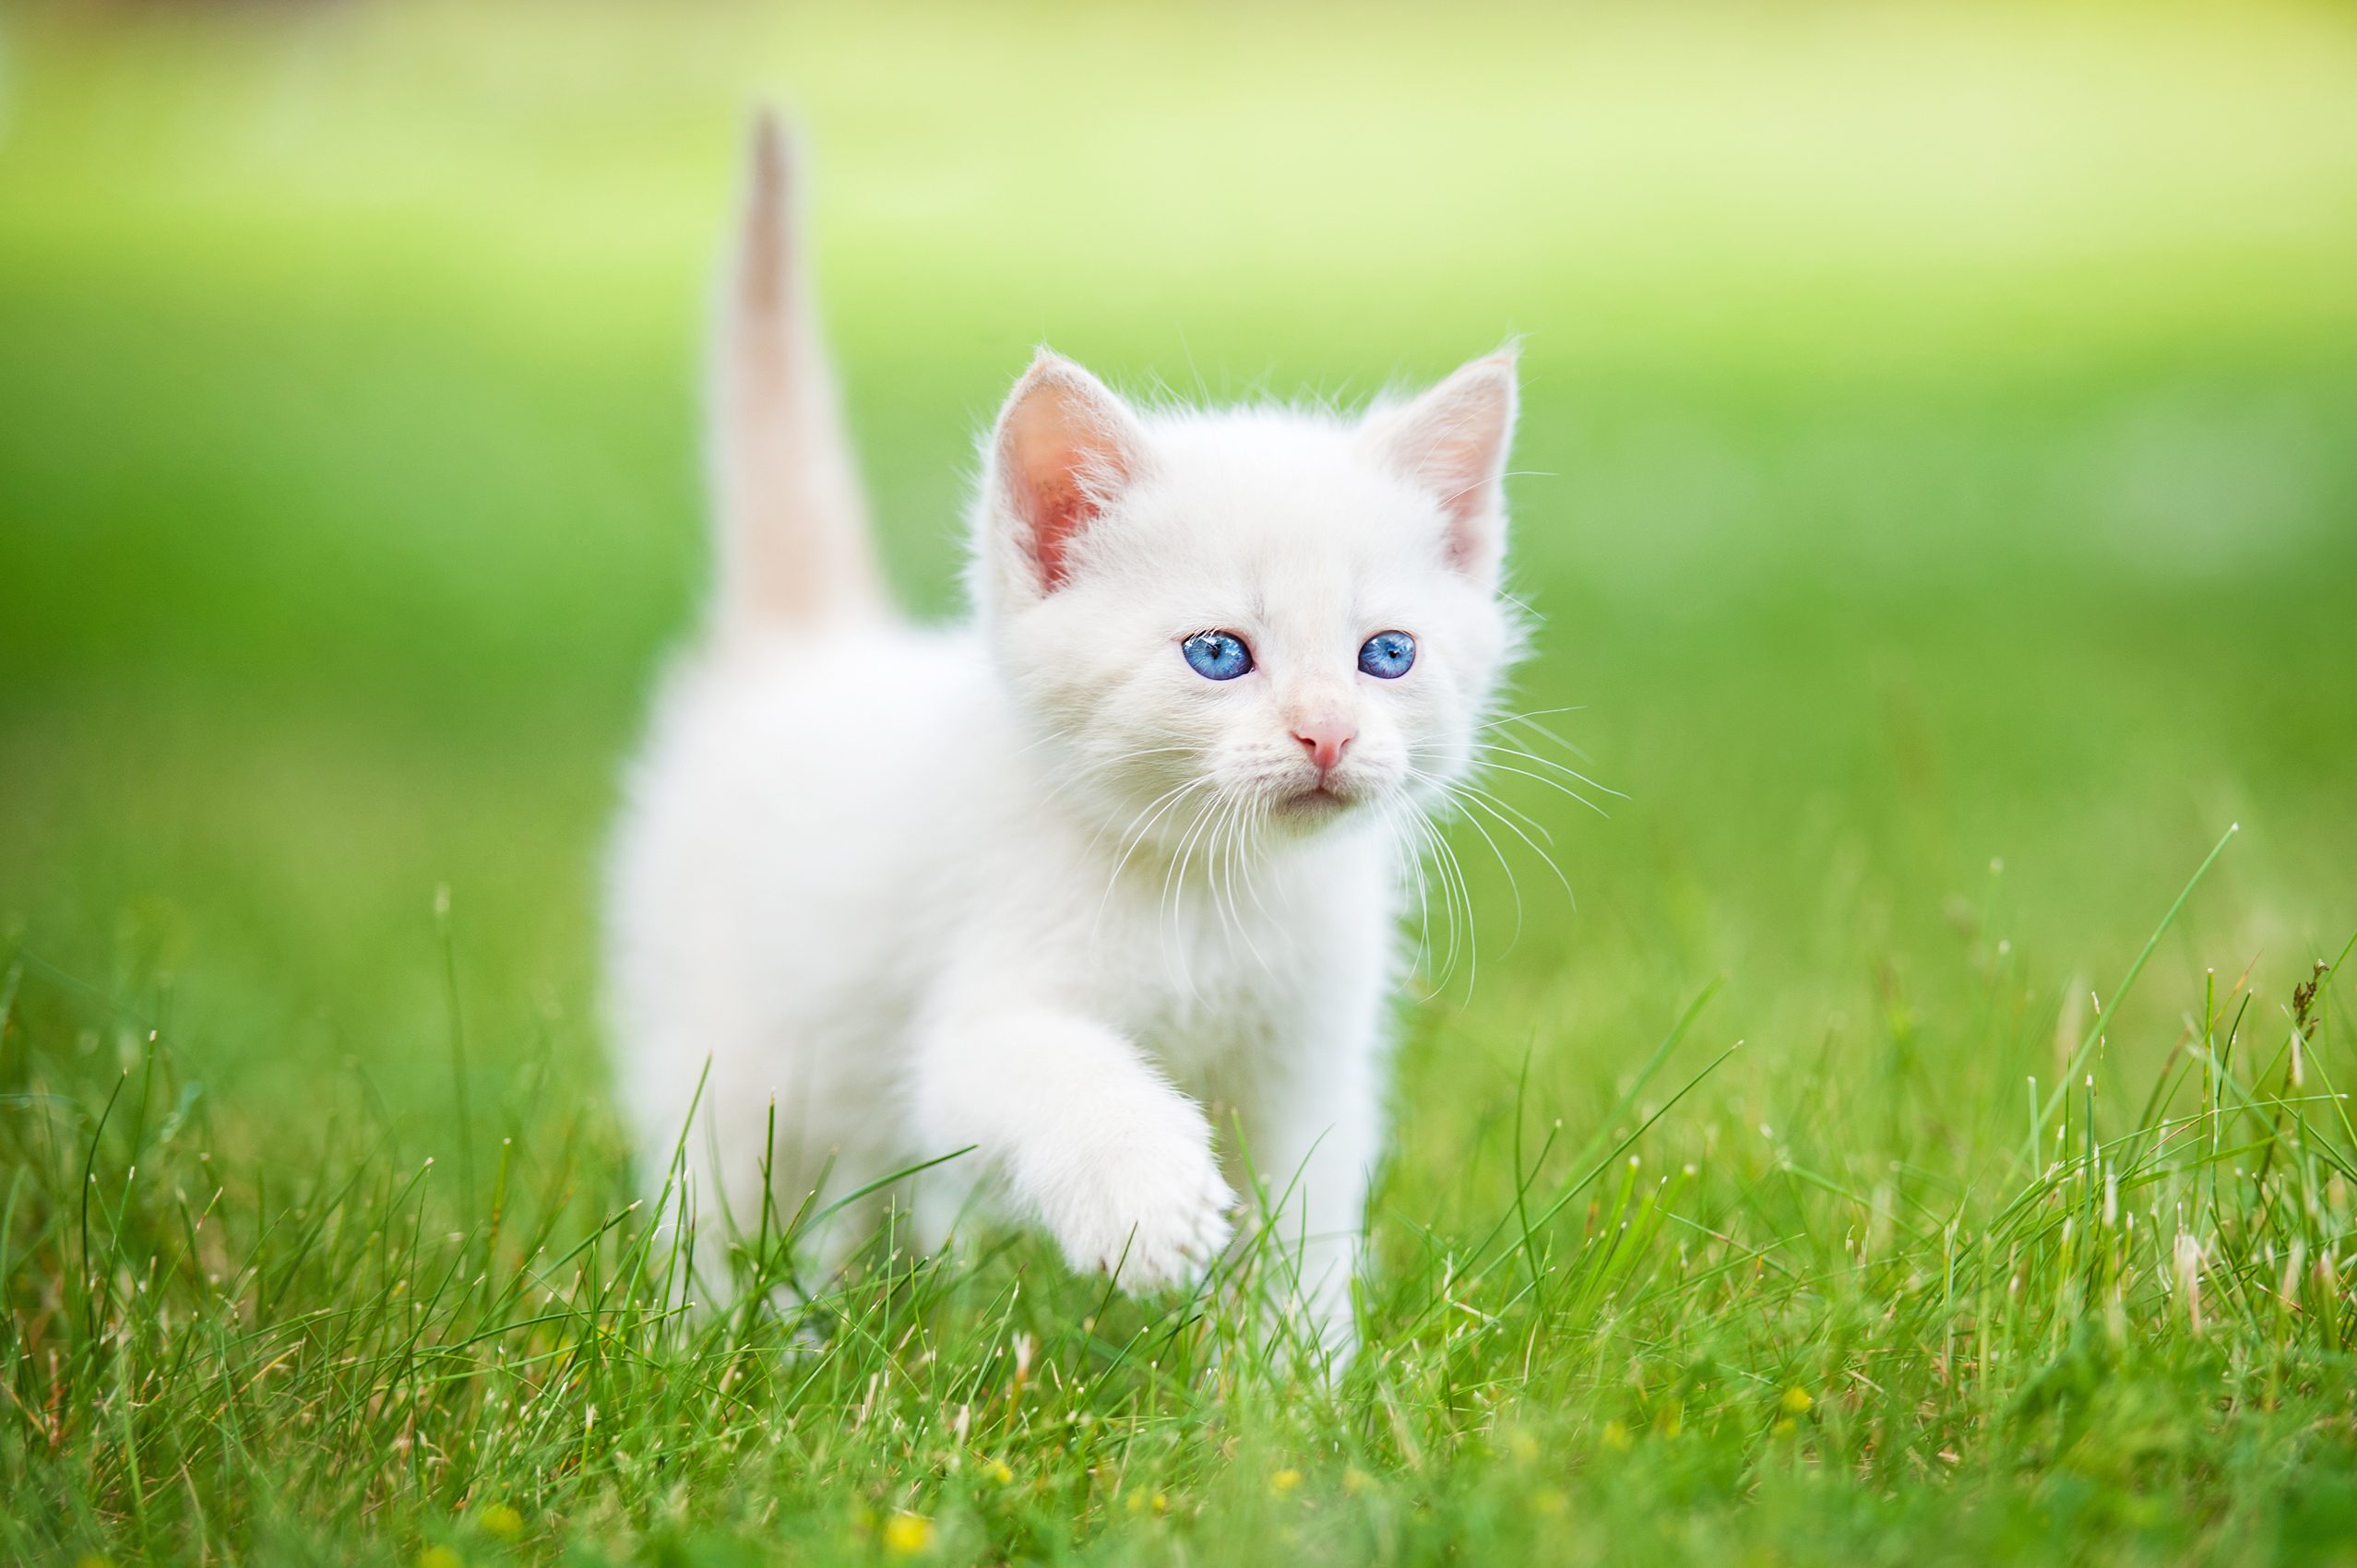 Adorable white kitten with blue eyes walking on the lawn